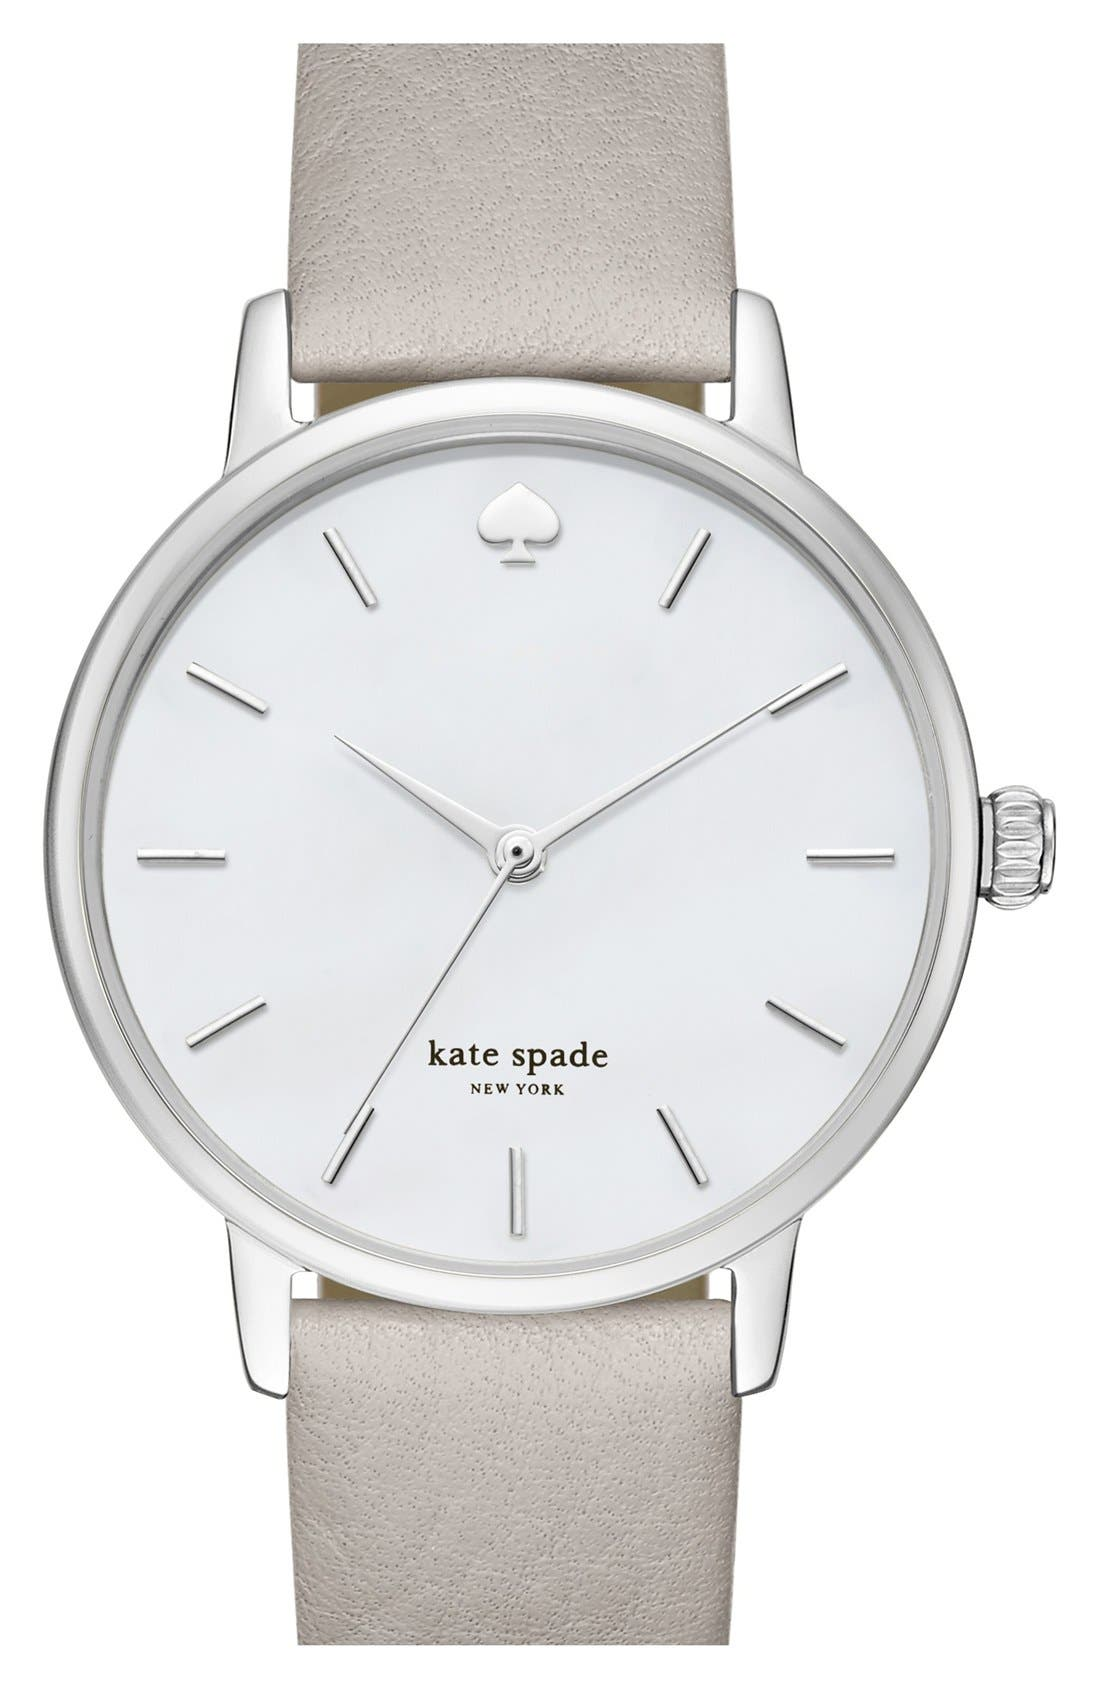 KATE SPADE NEW YORK 'metro' round leather strap watch, 34mm, Main, color, GREY/ MOTHER OF PEARL